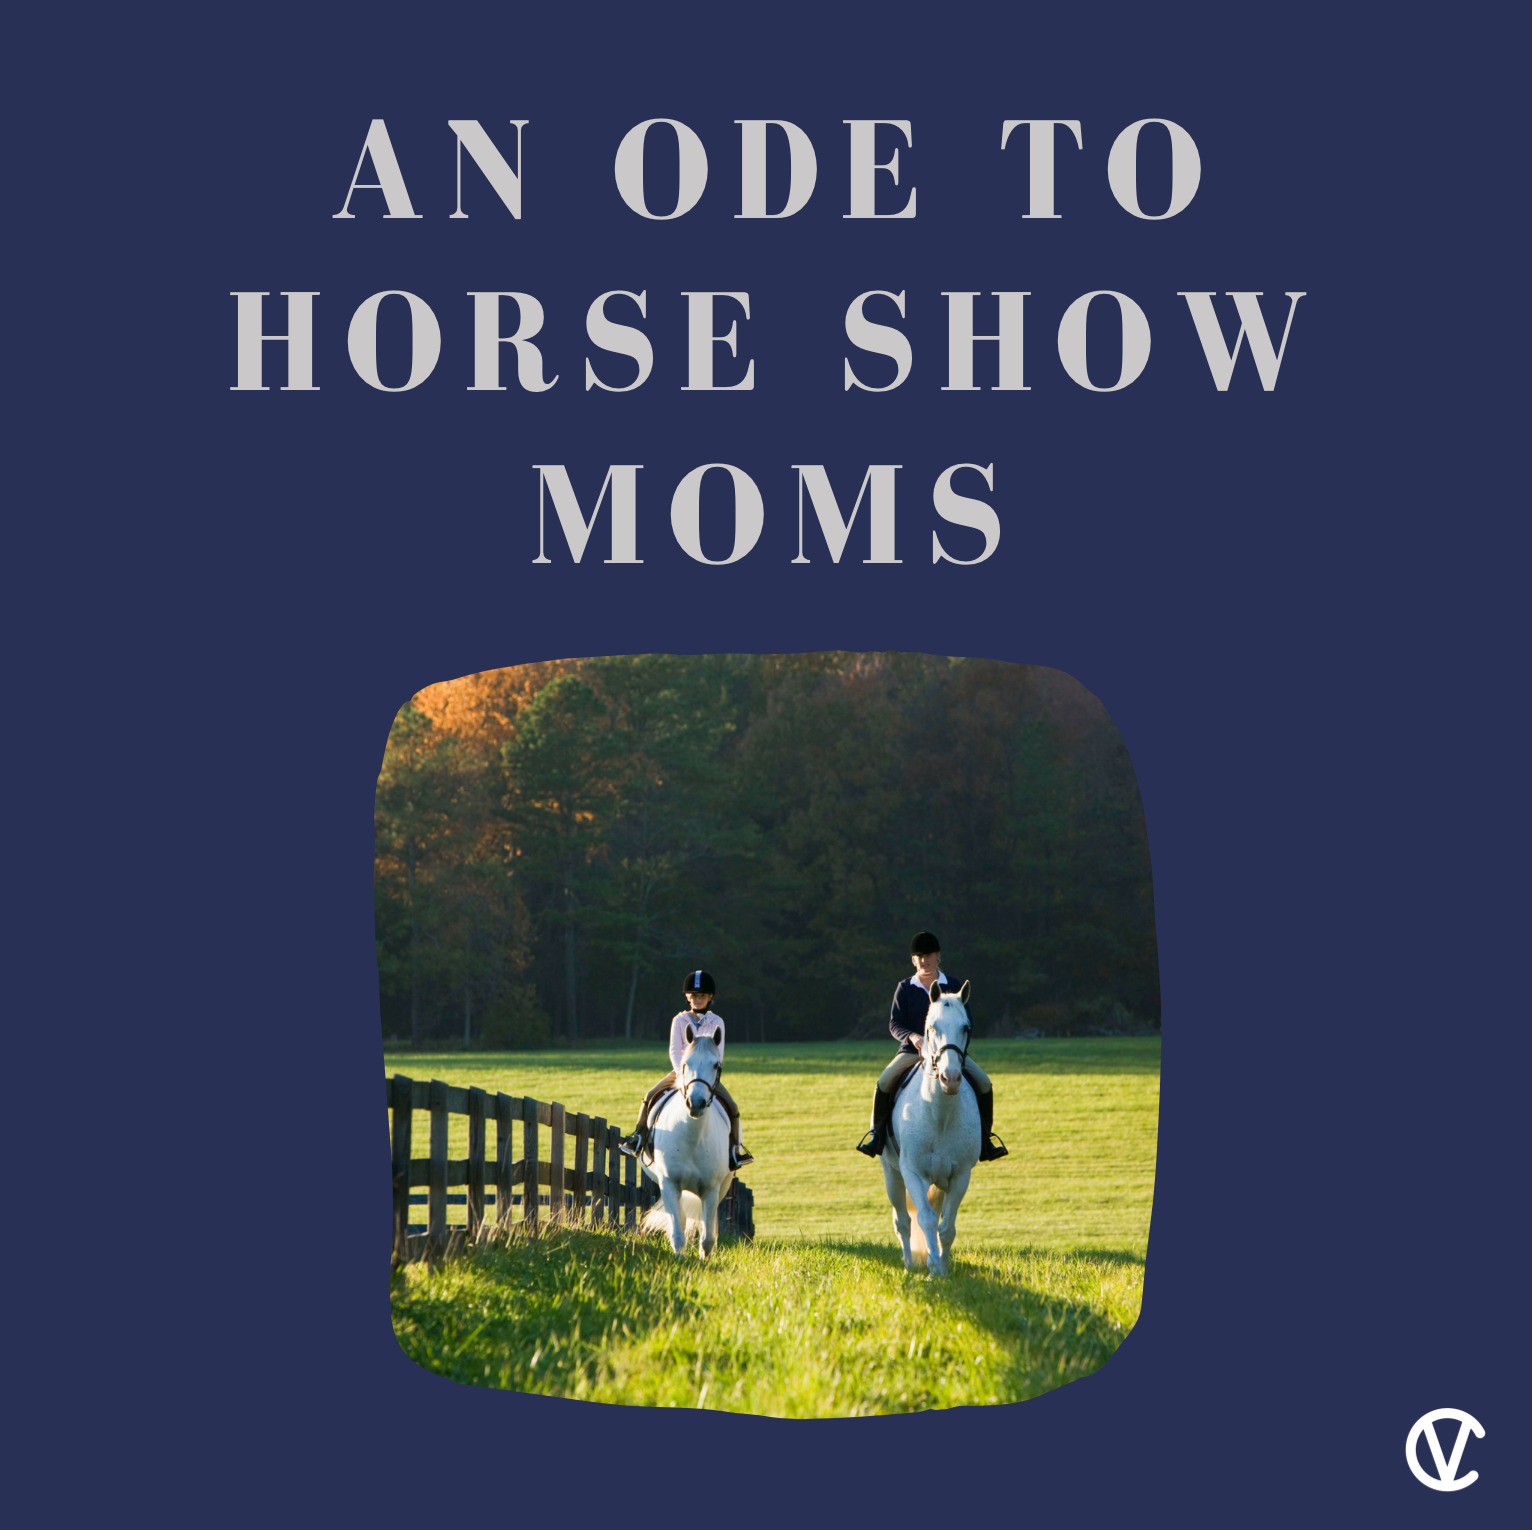 An Ode to Horse Show Moms